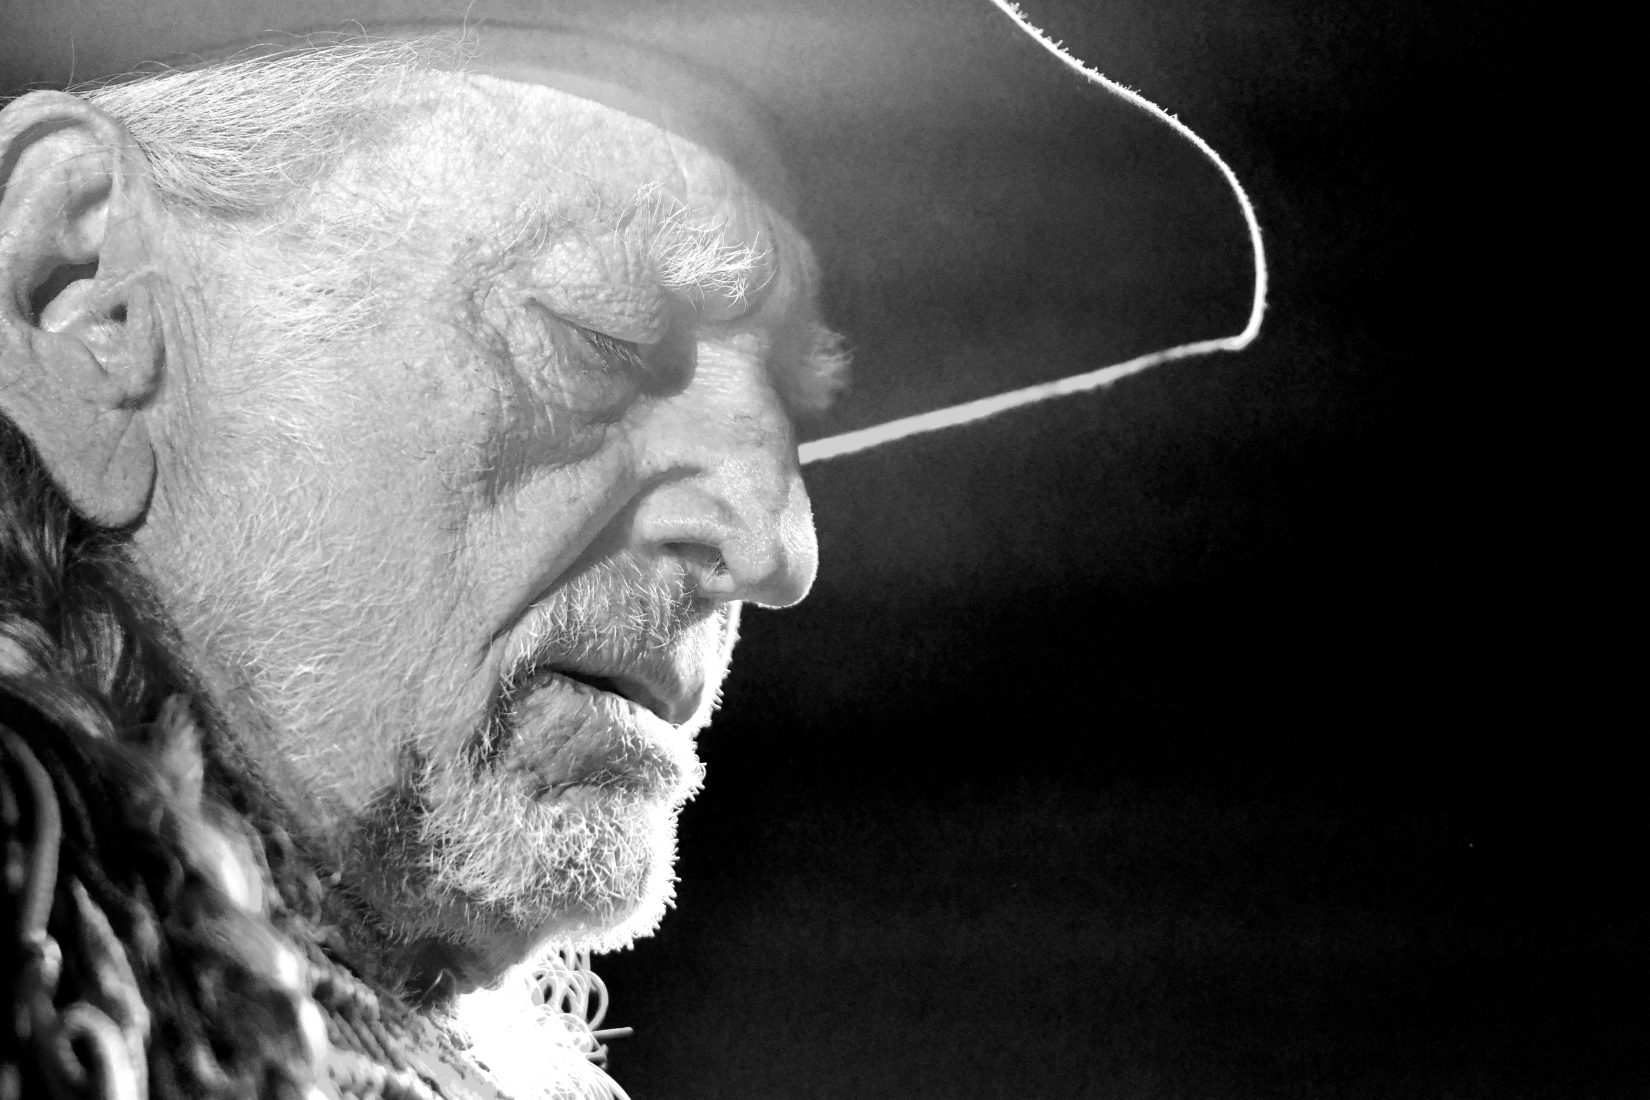 Country music legend and legalization activist Willie Nelson plays a show at Humphreys Concerts by the Bay in San Diego in October 2016. (Vince Chandler, The Denver Post)